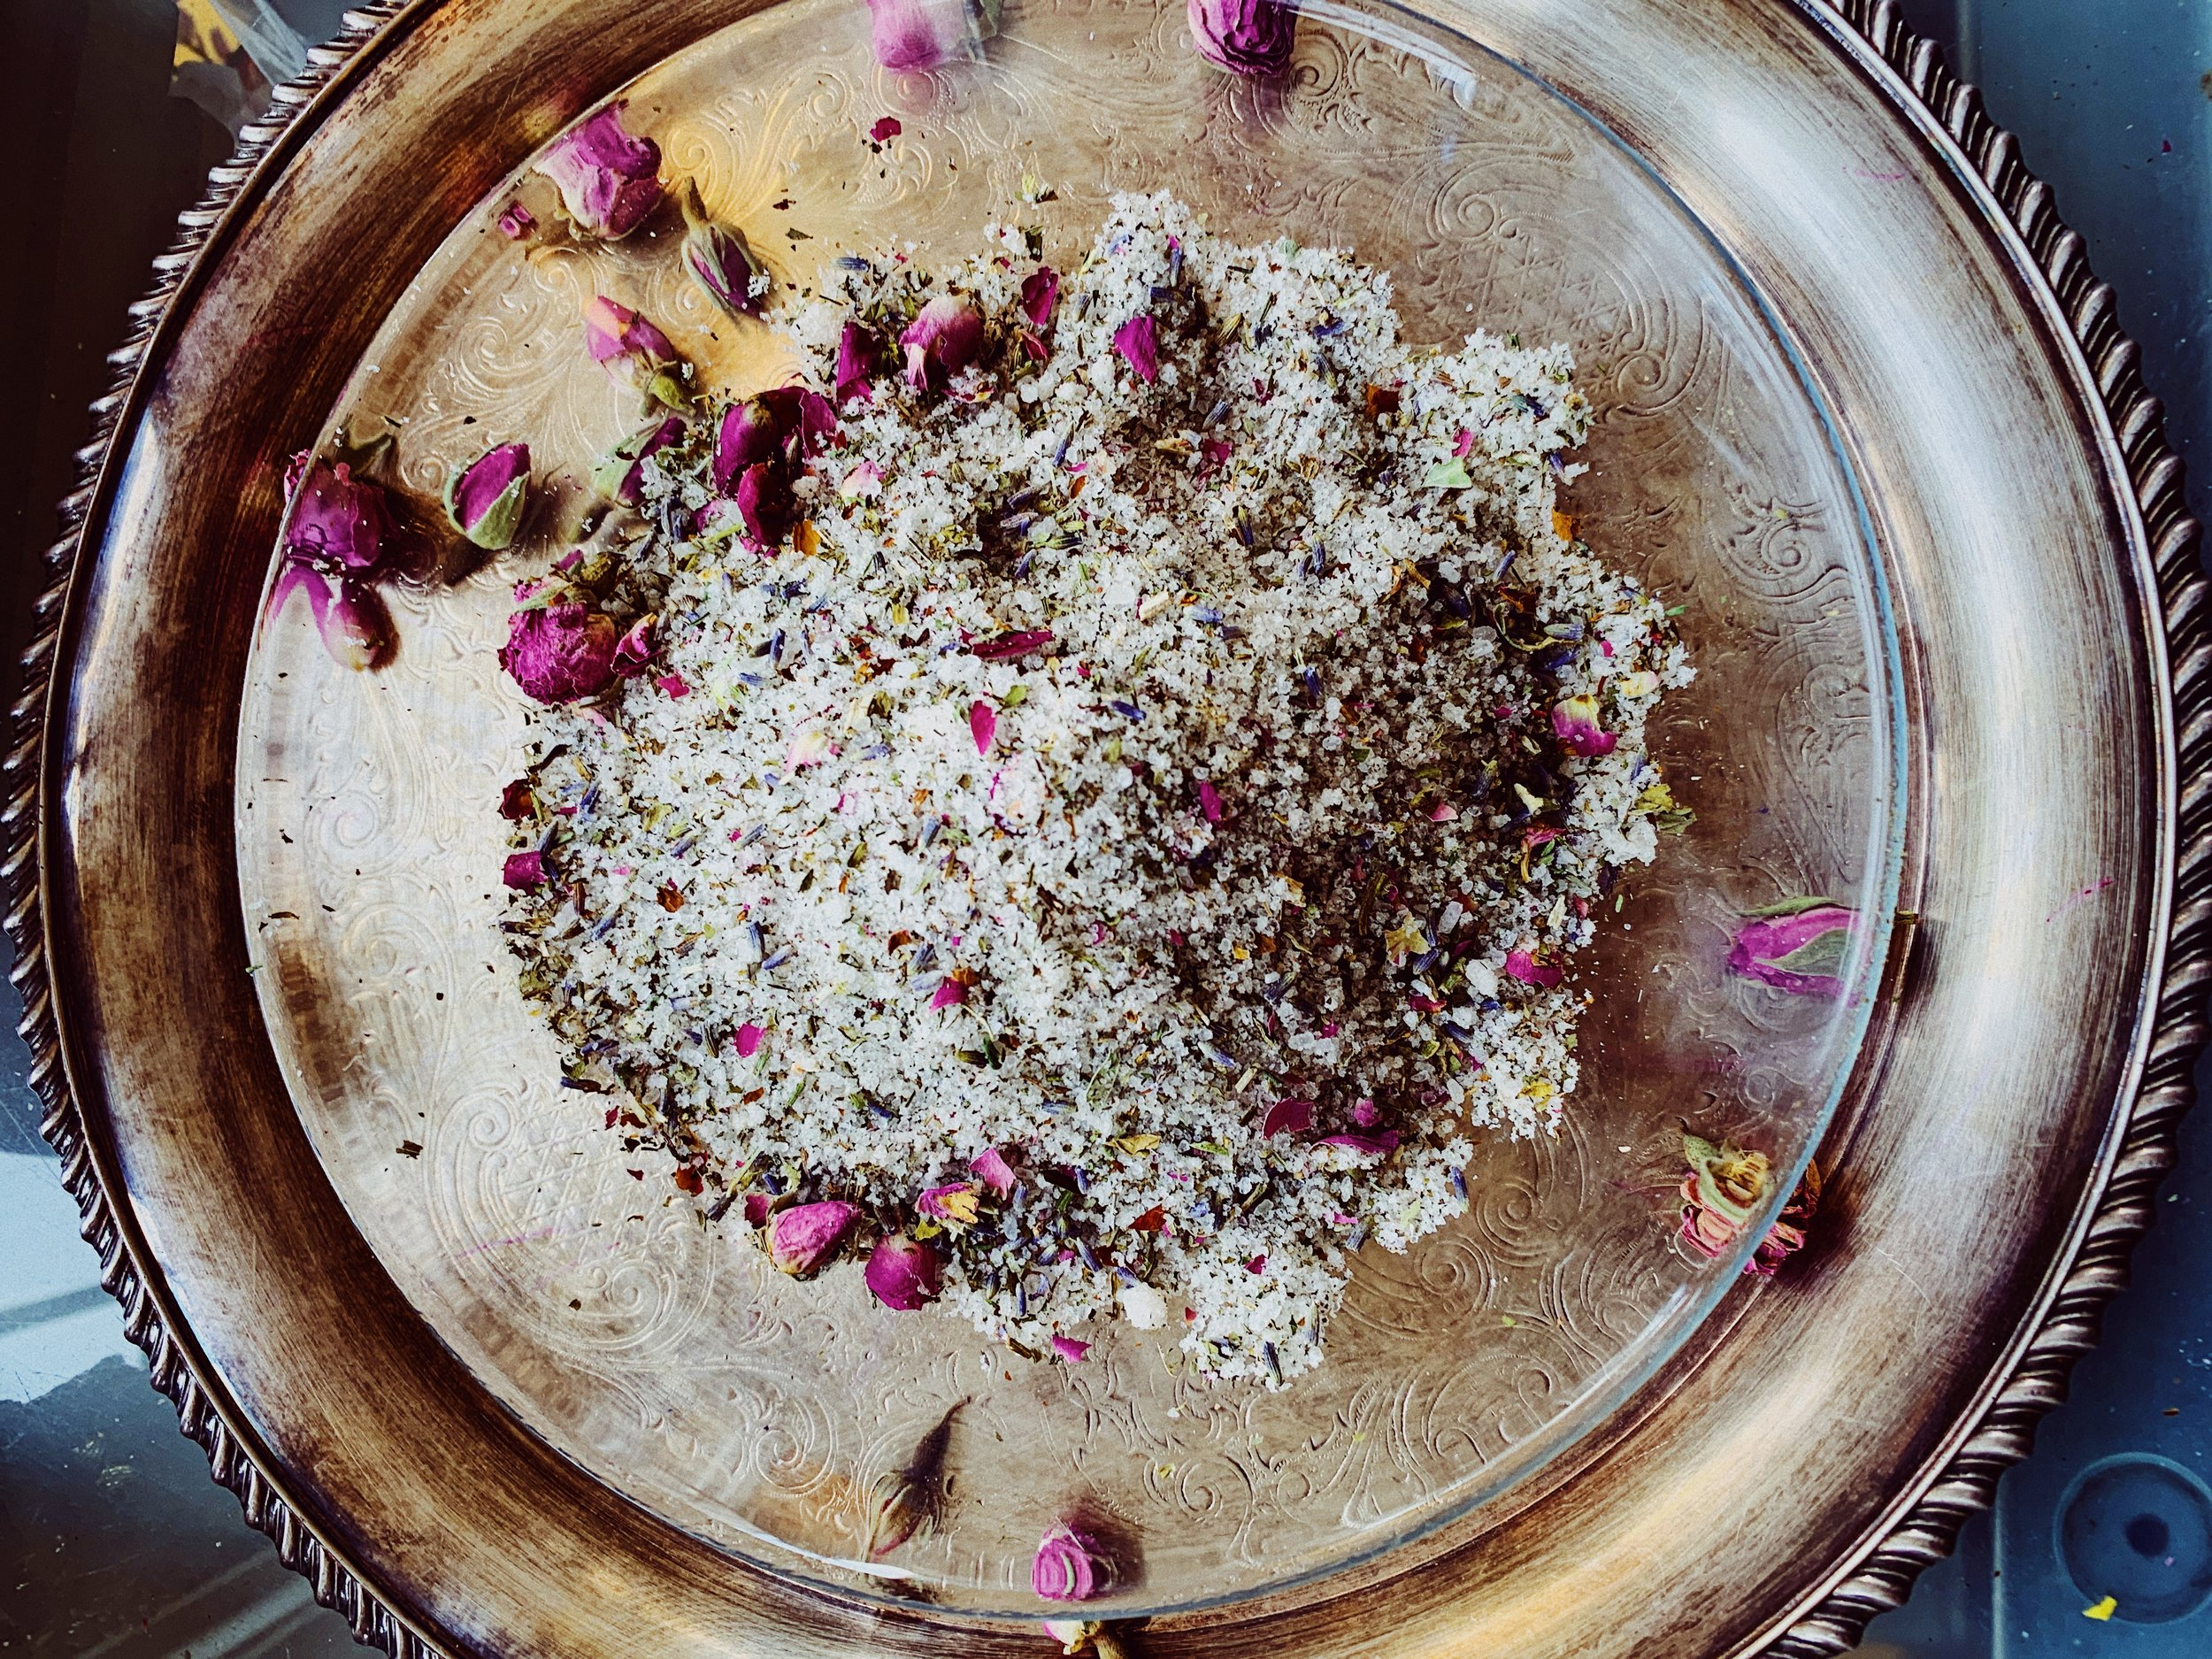 Herbal Bath Salts for Energetic and Spiritual Cleansing — Evolve